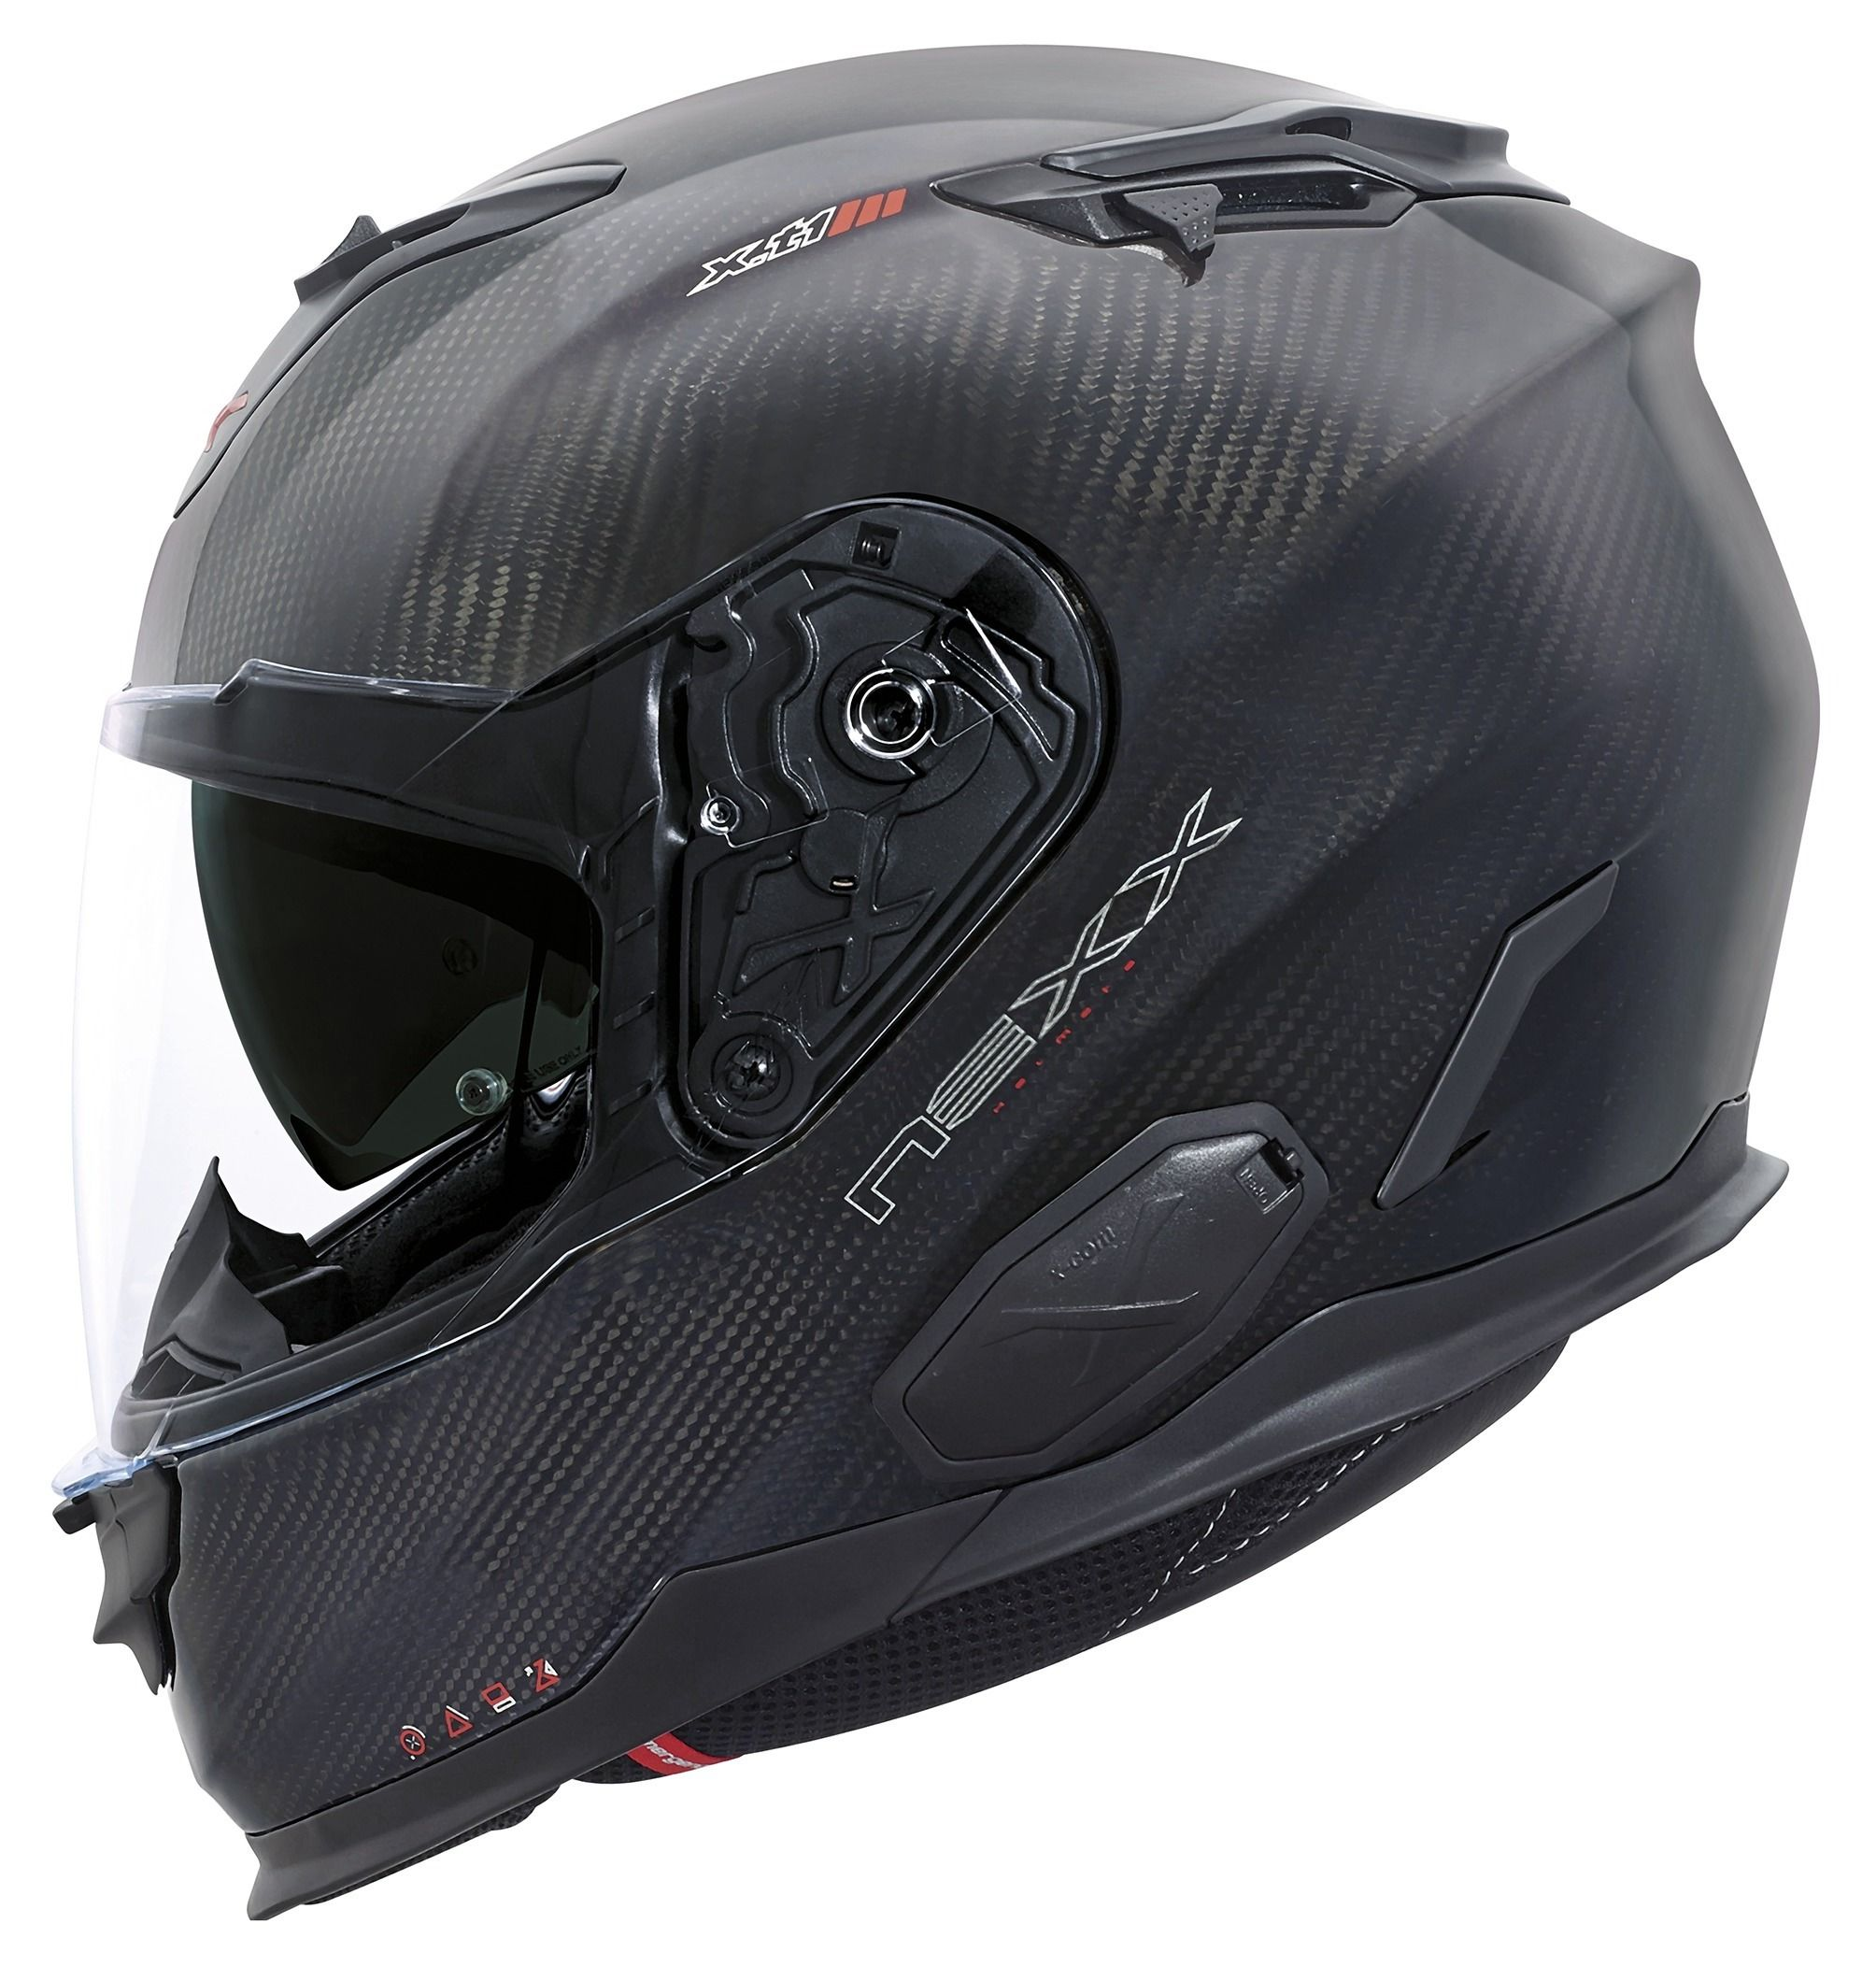 Racequip Racing Helmets Accessories 69026175 together with Review Troy Lee Designs A2 additionally 1337255414 likewise Bell Moto 3 Helmets Rebirth Of A Legend besides Labomba 15127. on open face helmets